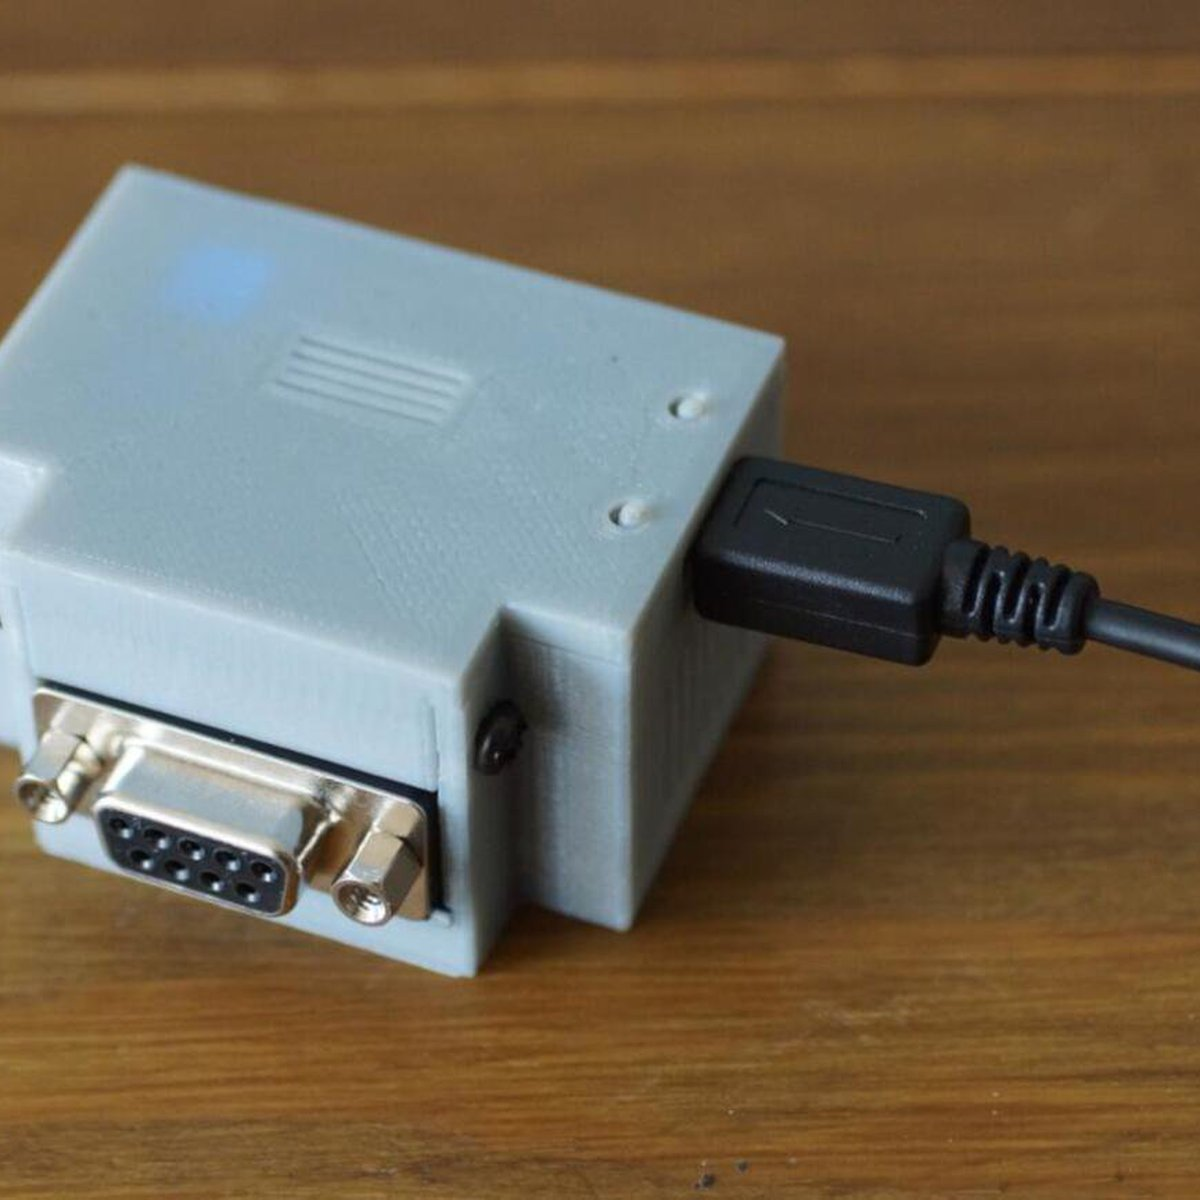 Retro Wifi SI - rs232 serial port internet modem from